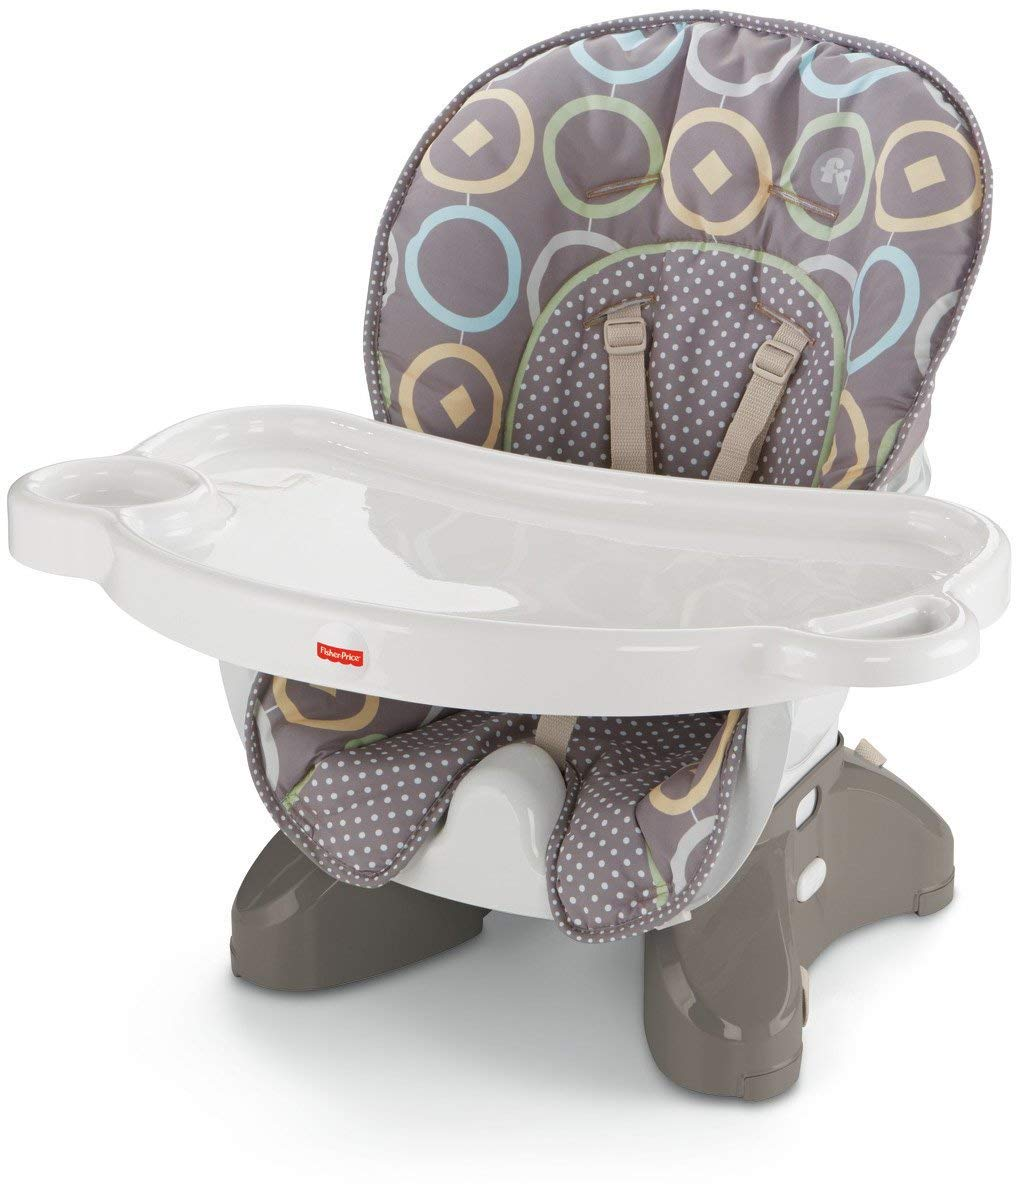 Fisher-Price SpaceSaver High Chair, Luminosity [Amazon Exclusive] by Fisher-Price